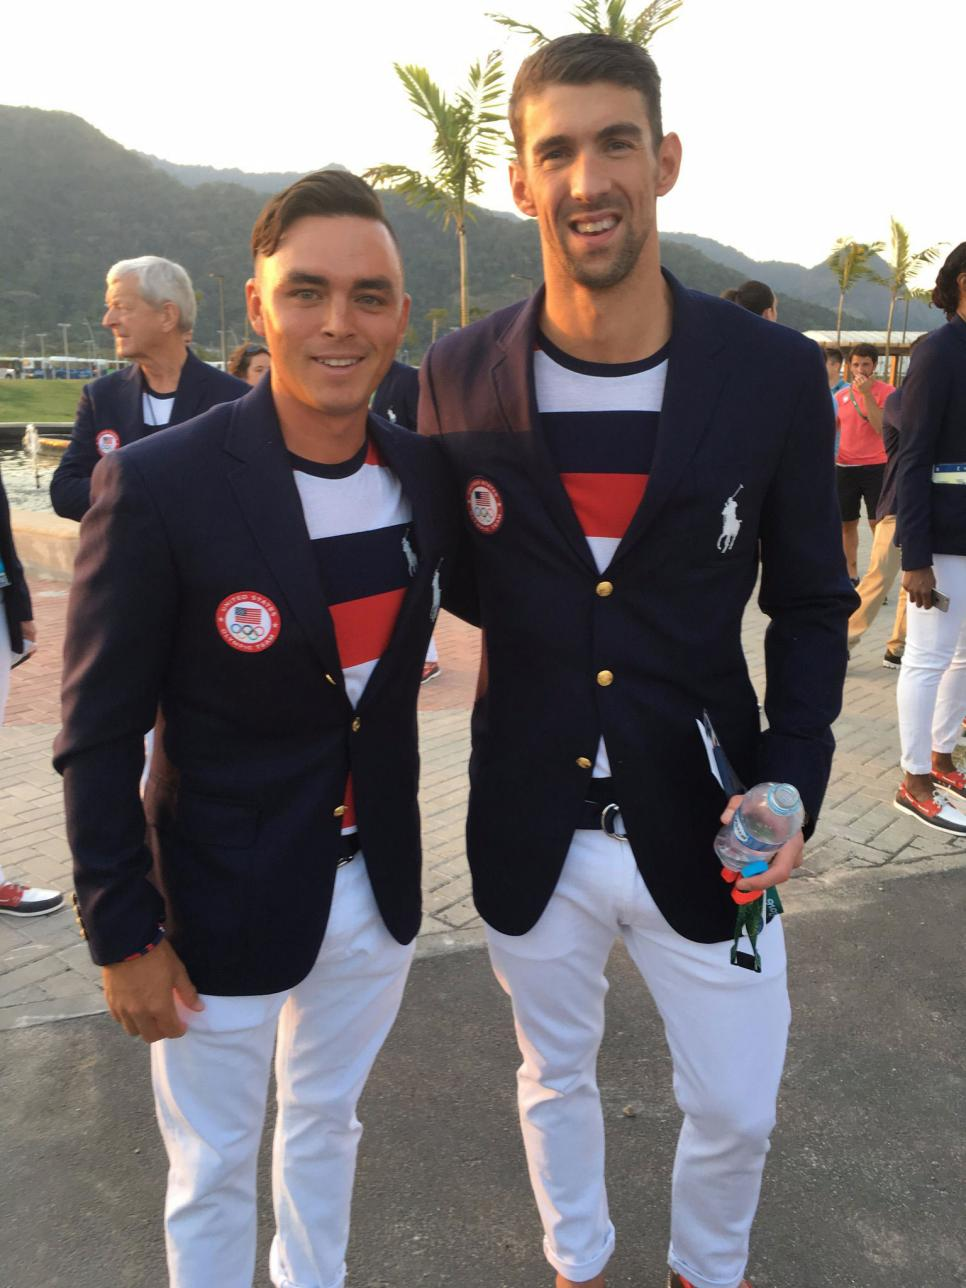 rickie-fowler-michael-phelps-rio-olympics-opening-ceremony.jpg